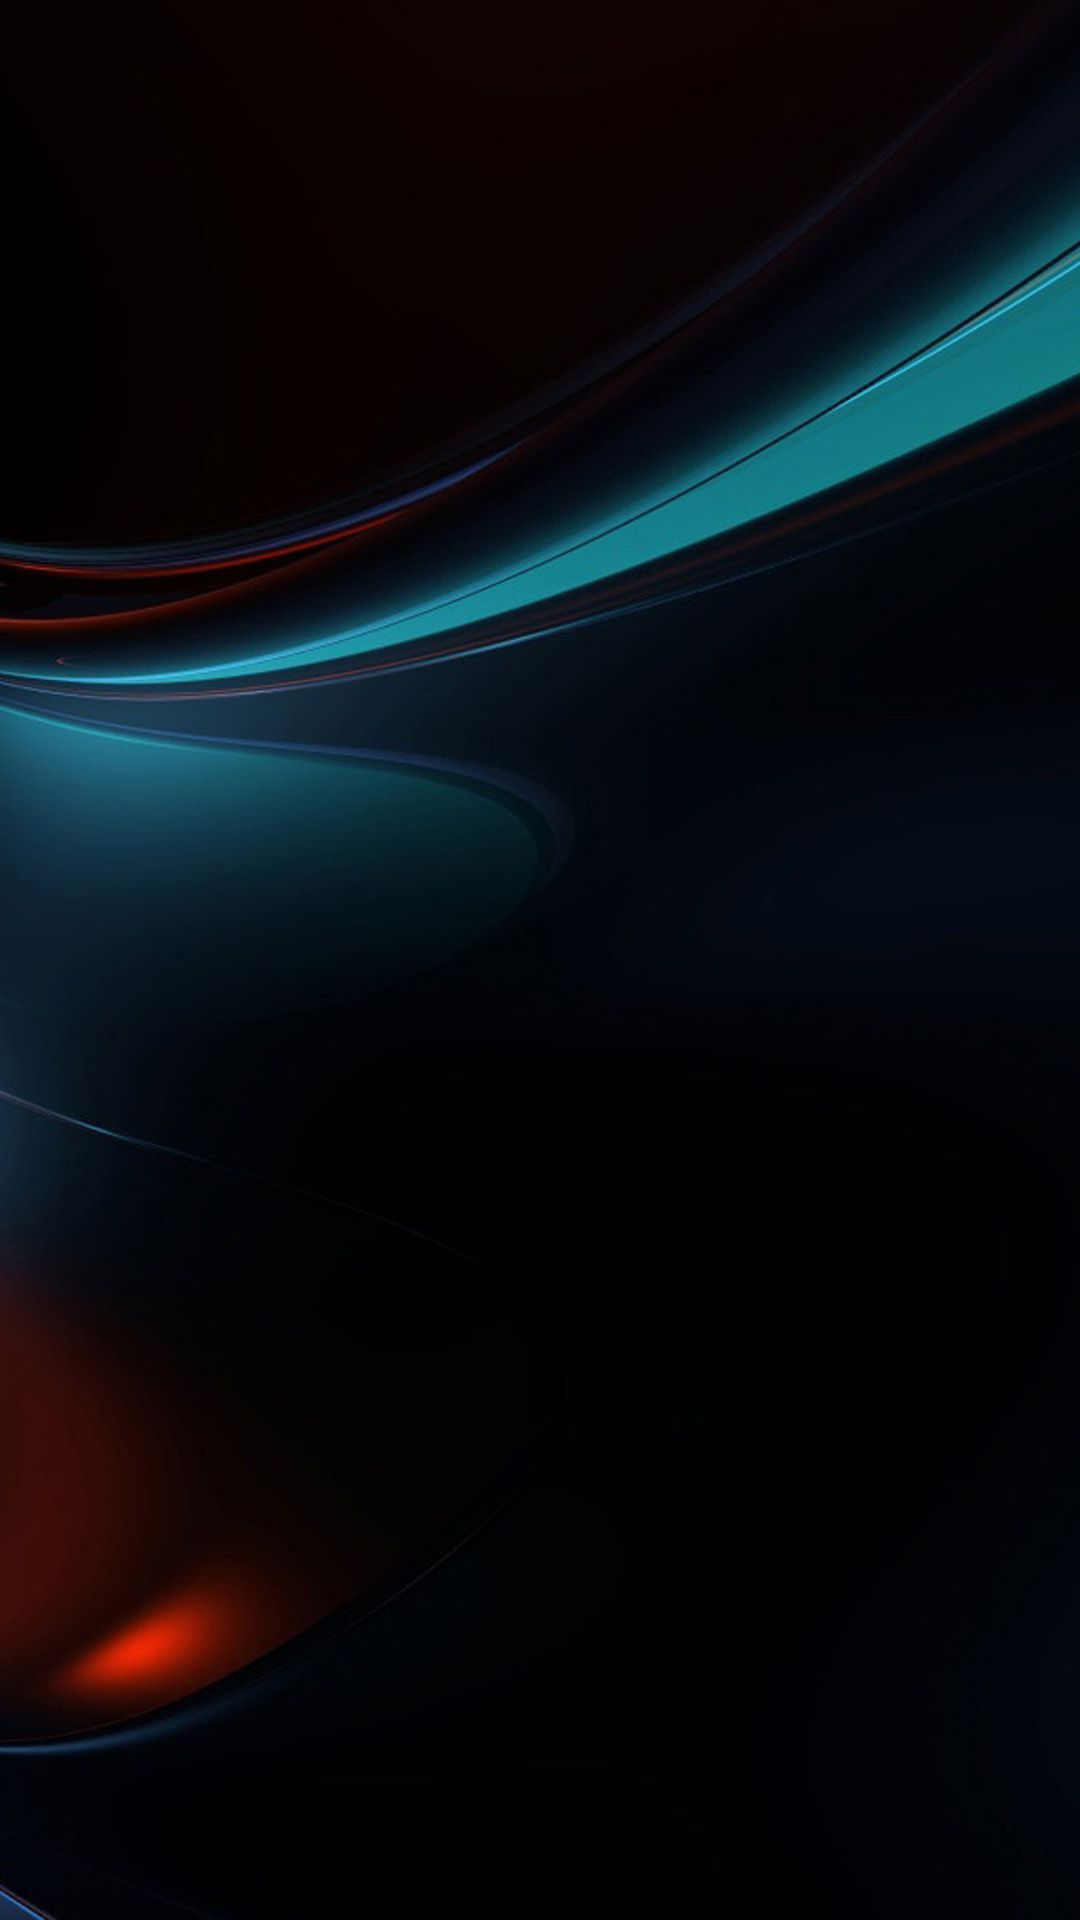 Add This Abstract Phone Wallpaper As Your Private Collection - Dark Blue Wallpaper For Mobile , HD Wallpaper & Backgrounds